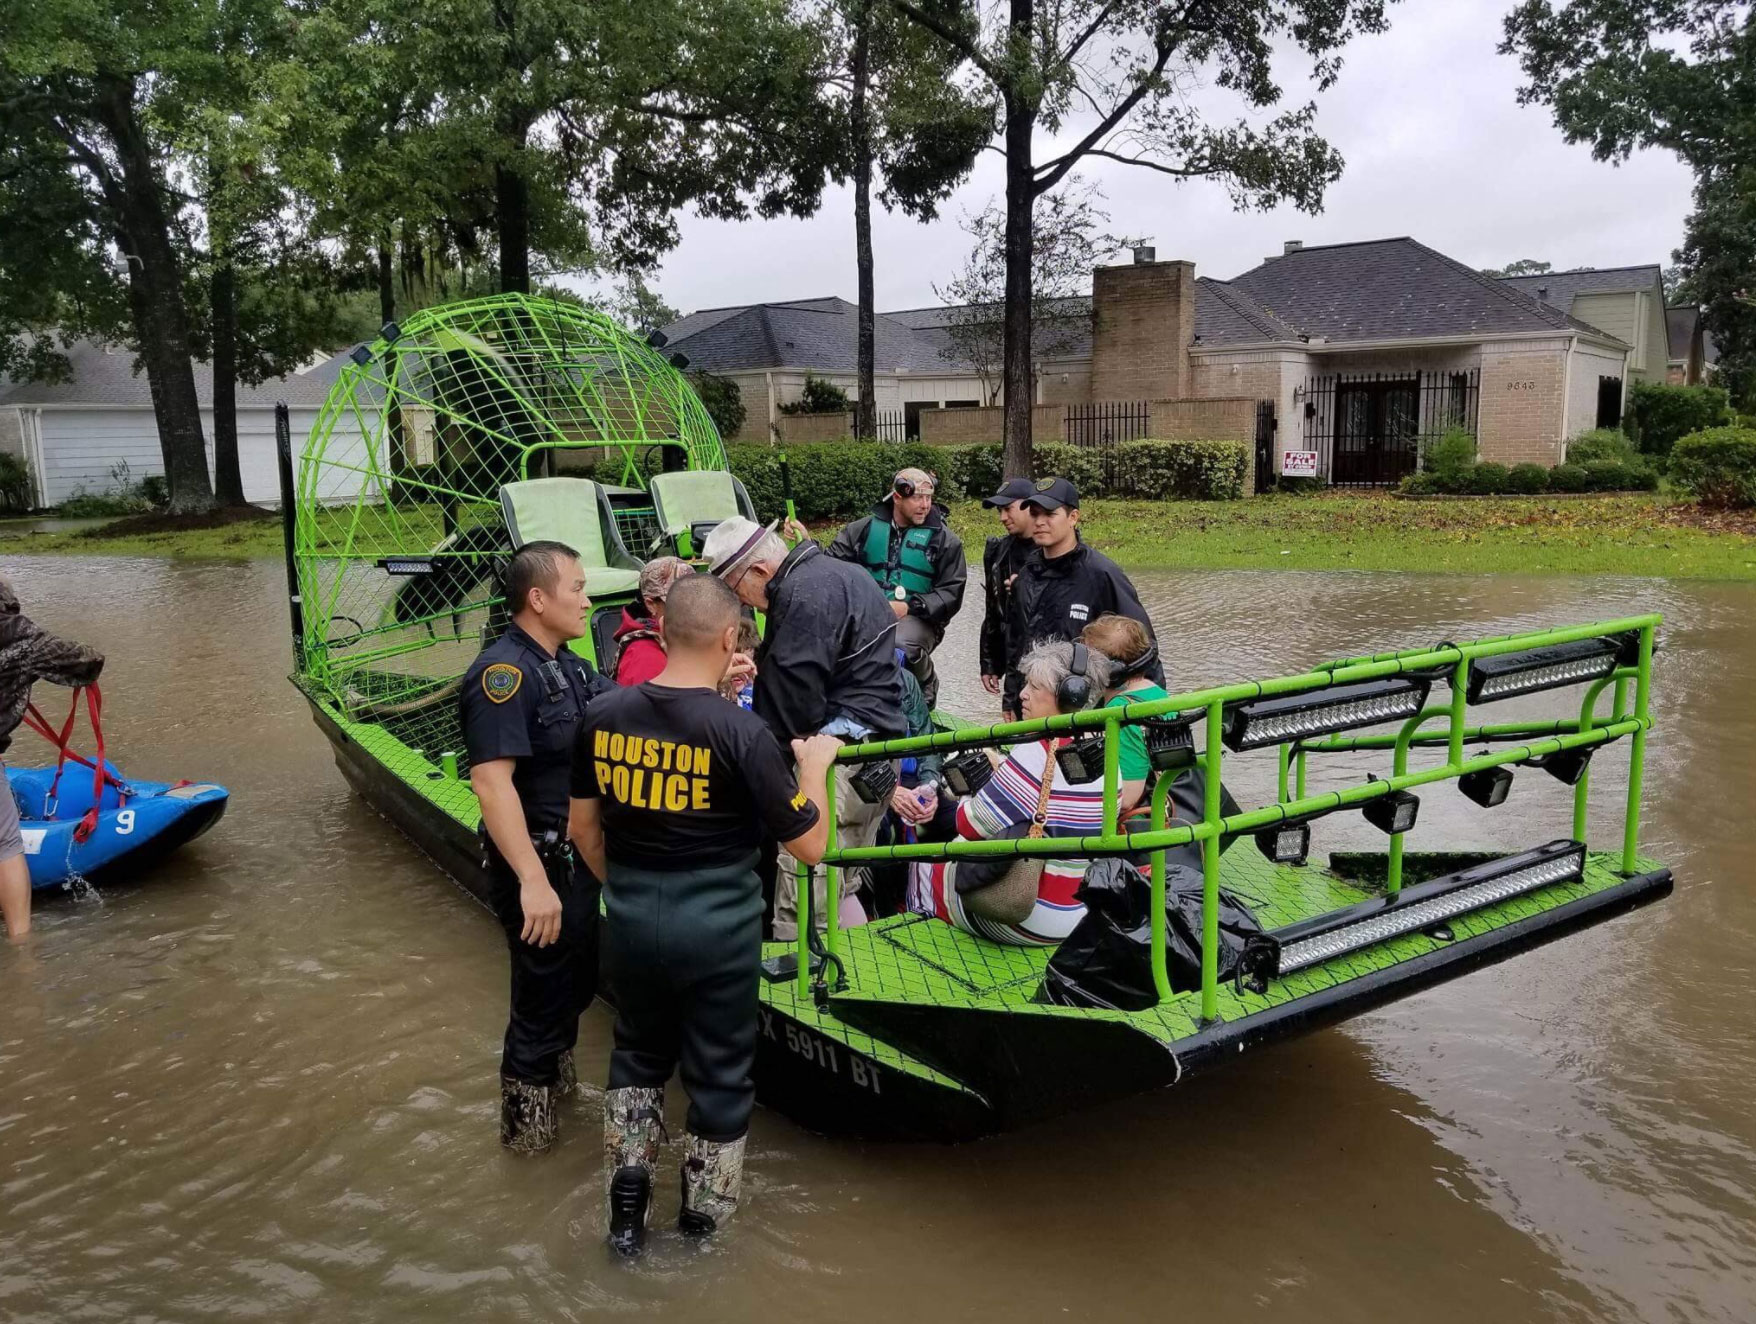 <div class='meta'><div class='origin-logo' data-origin='none'></div><span class='caption-text' data-credit='houstonpolice/Twitter'>The Houston Police rescue a group stranded by the flood.</span></div>